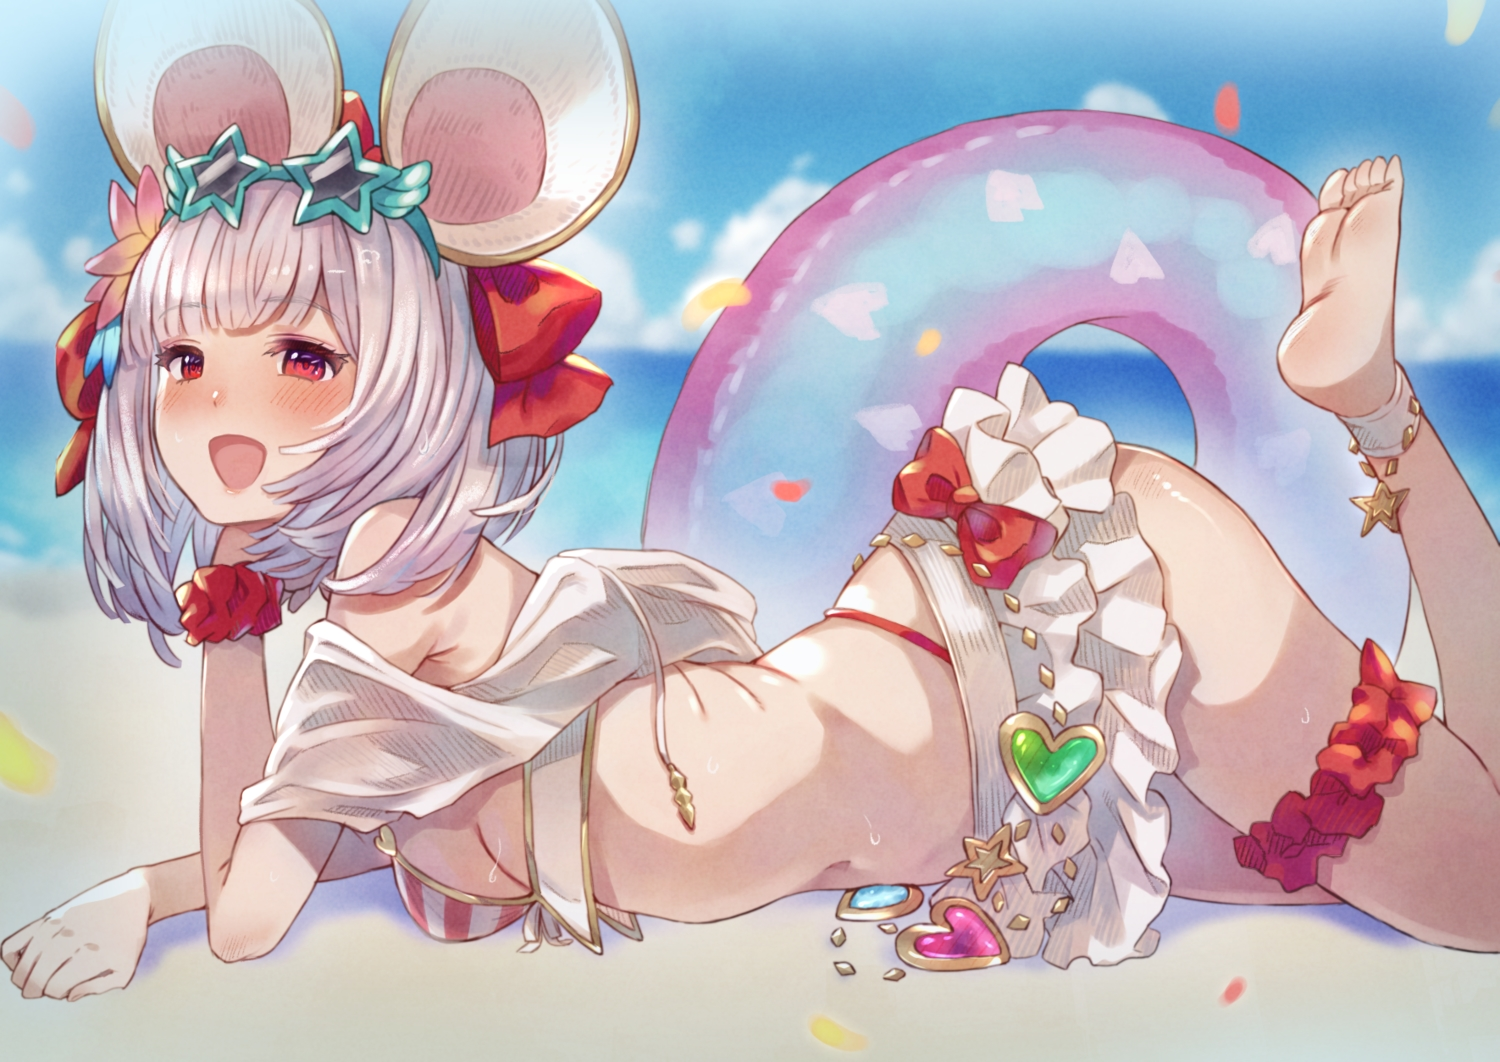 animal_ears barefoot beach bikini blush bow breasts clouds eichan_(eichanidfi) garter granblue_fantasy gray_hair mousegirl navel red_eyes short_hair sideboob skirt sky sunglasses swim_ring swimsuit vikala_(granblue_fantasy) water wristwear